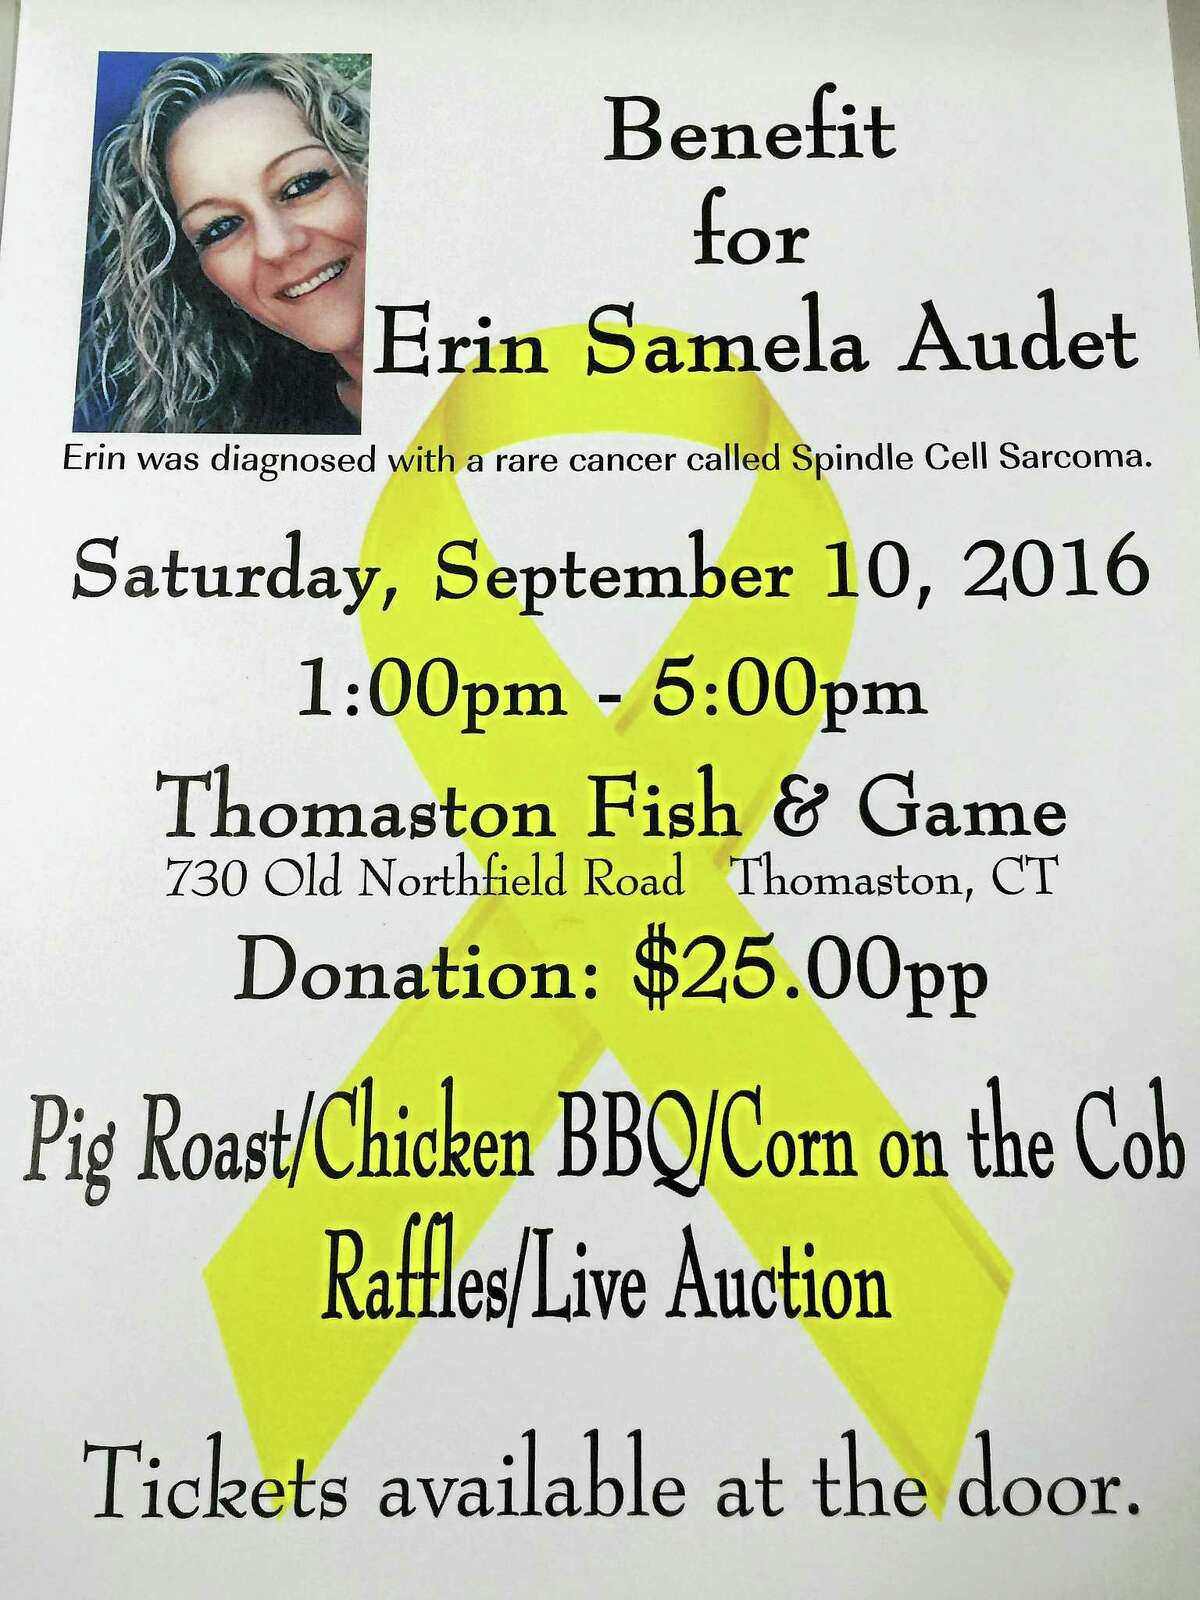 Contributed image courtesy ot Thomaston Fish & Game The flyer for the upcoming benefit for Erin Samela Audit, a local woman diagnosed with cancer.